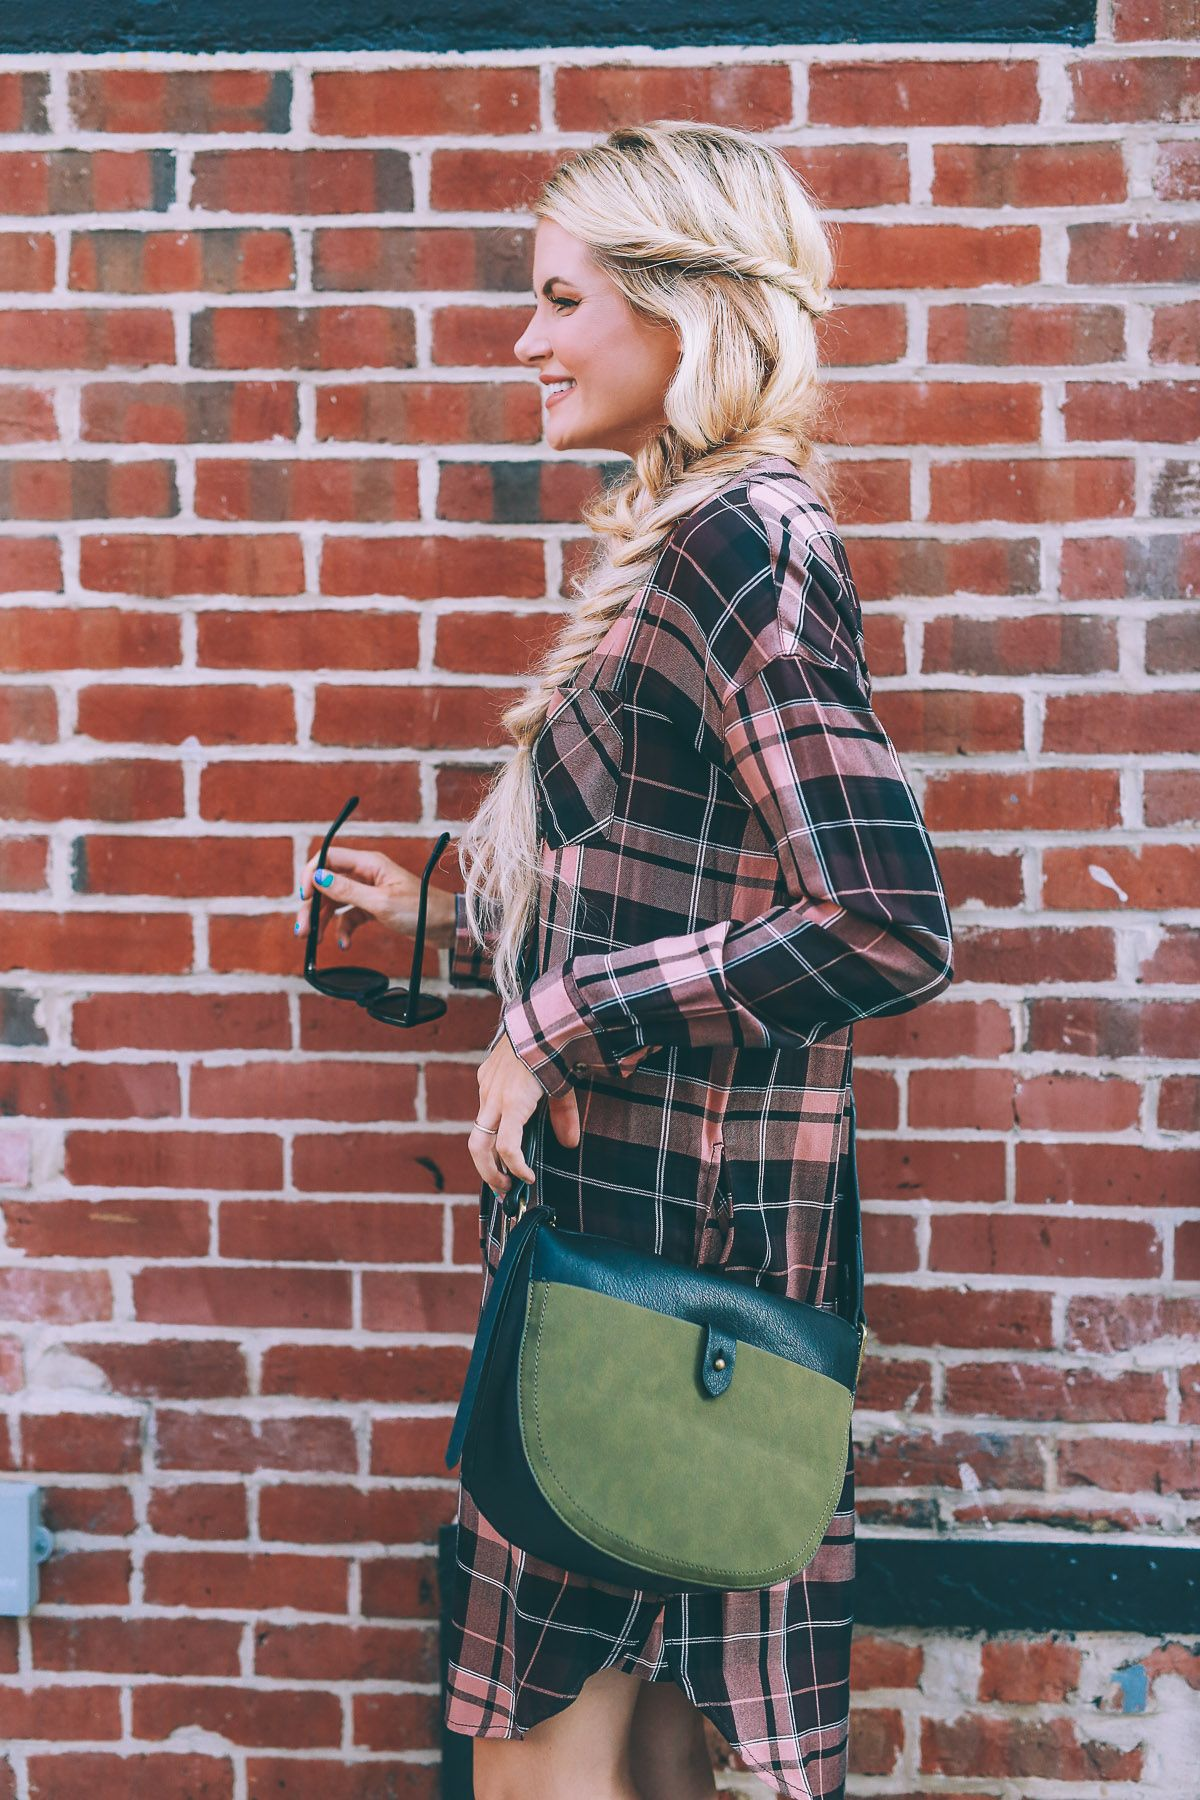 Transitioning to Fall - Barefoot Blonde by Amber Fillerup Clark